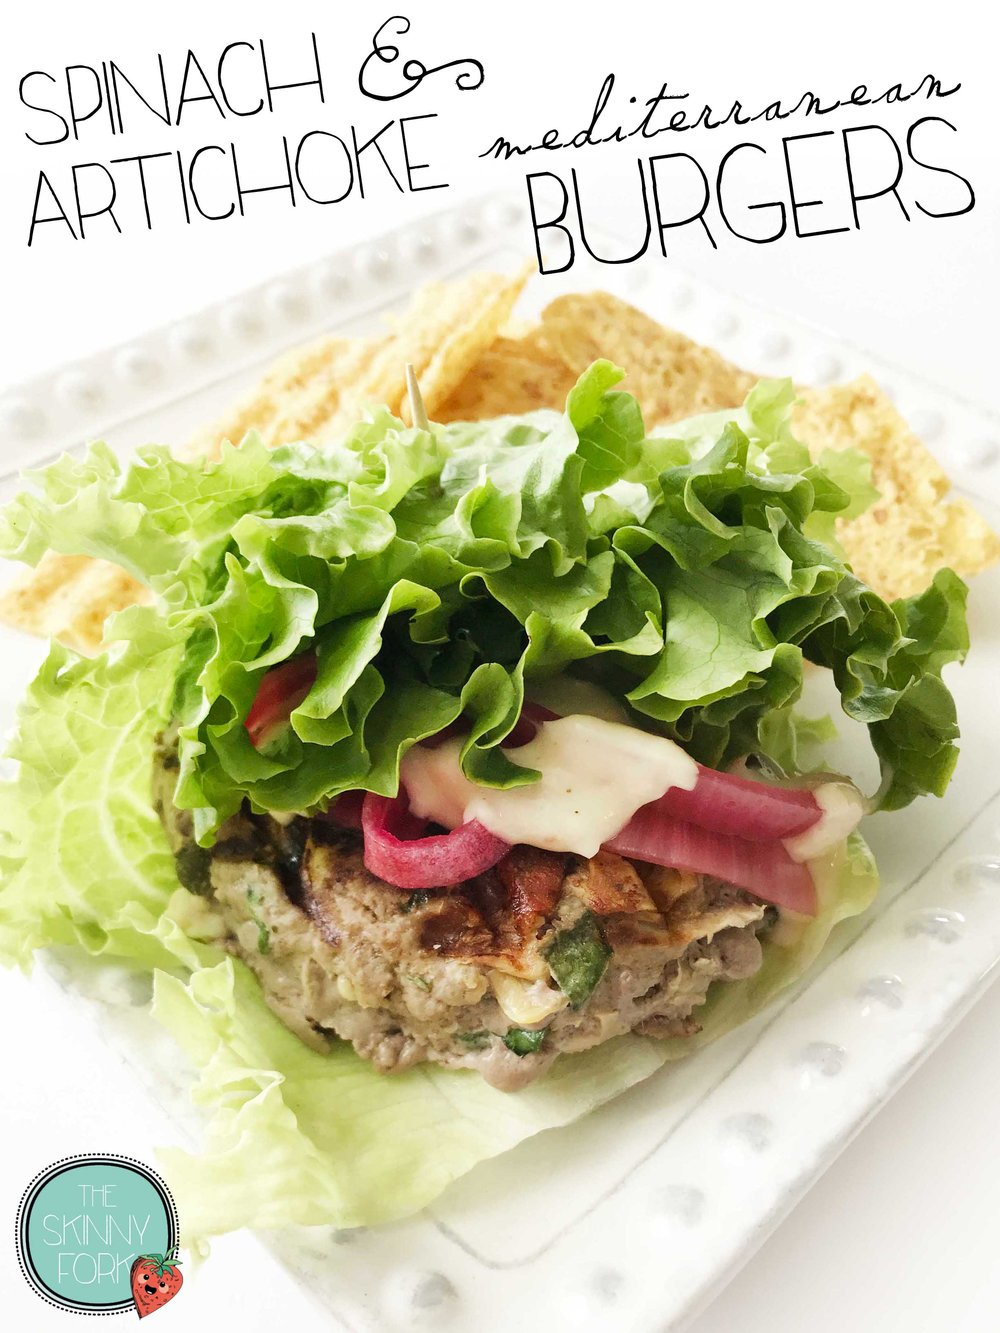 spinach-artichoke-burger-pin.jpg